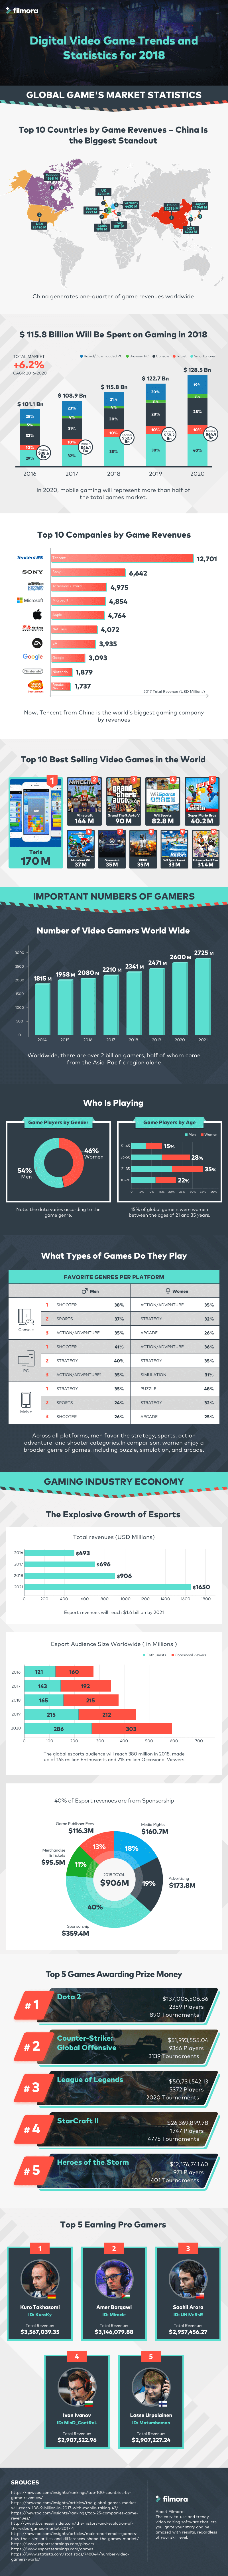 Digital Video Game Trends and Stats for 2018 - #infographic